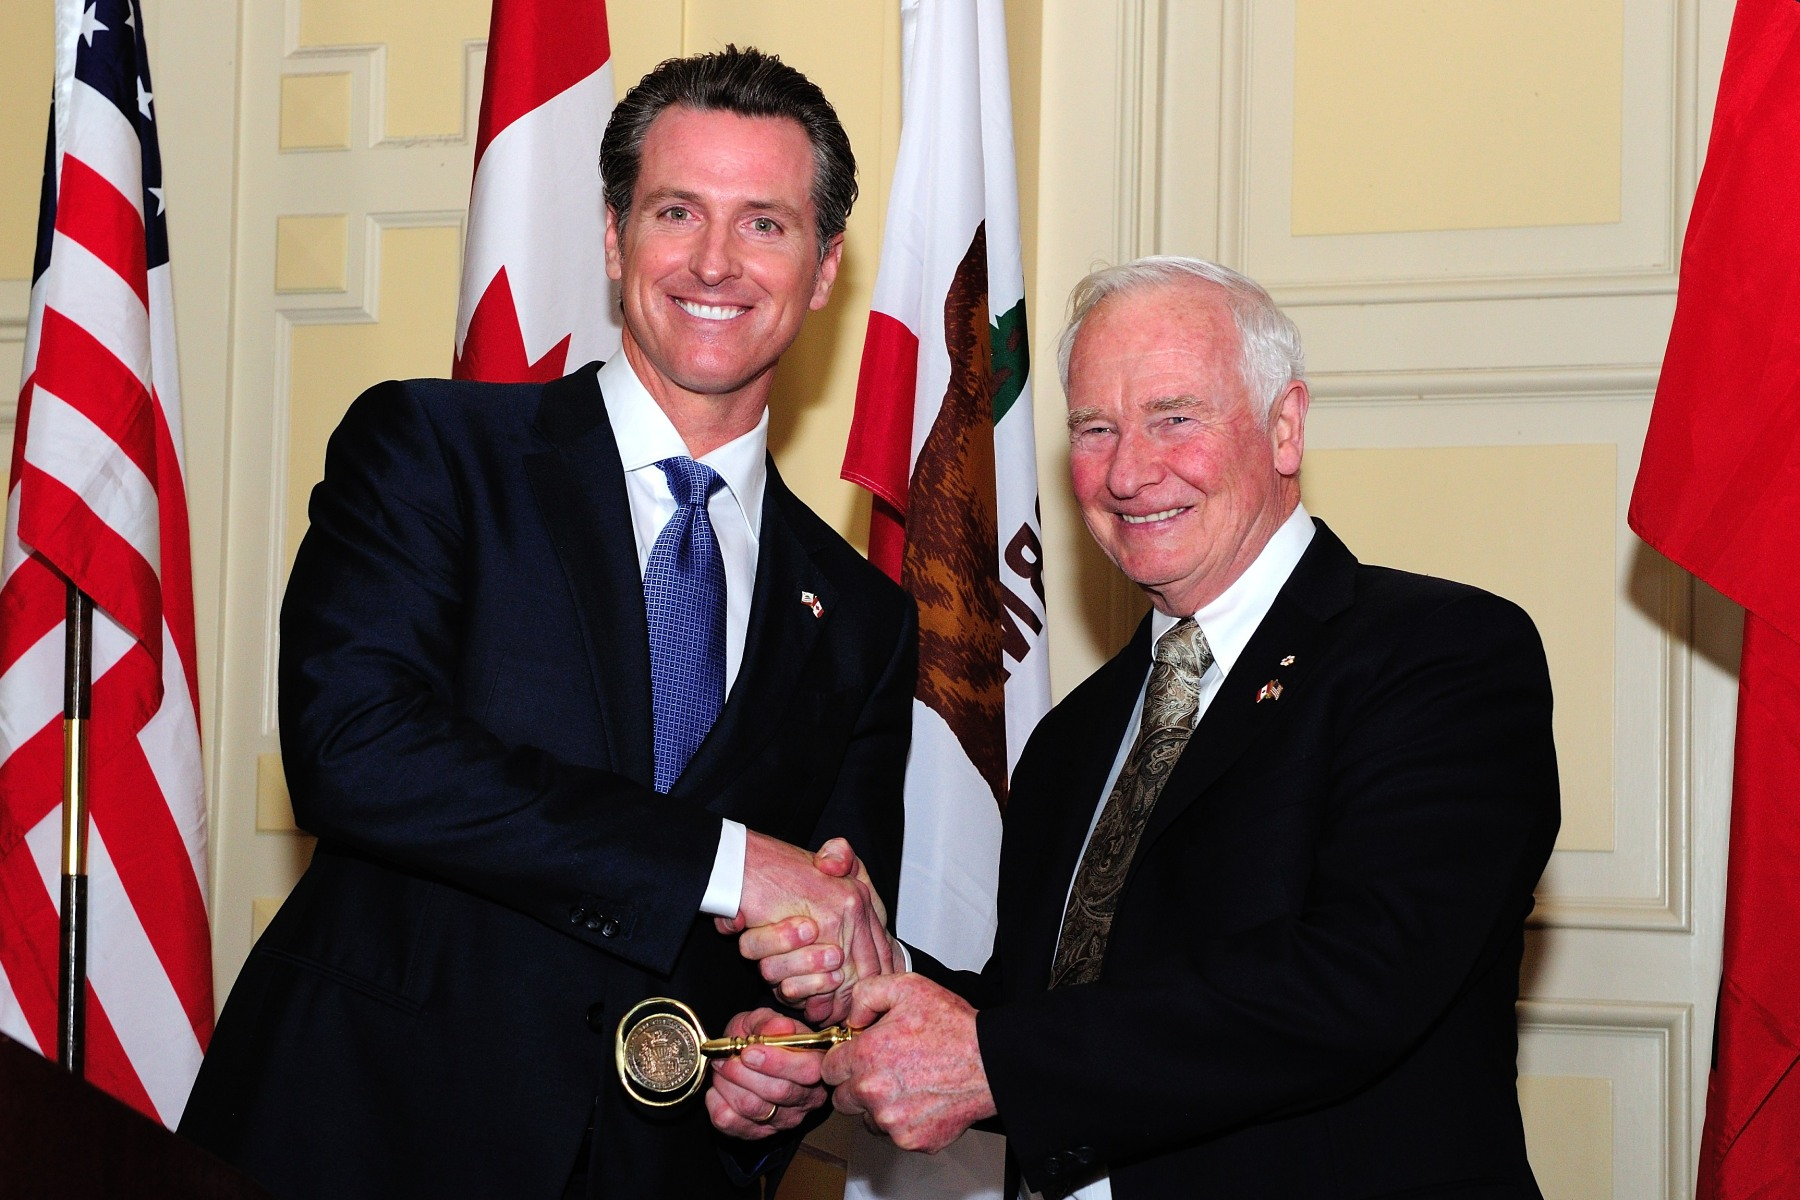 In honour of the Governor General's visit, Mr. Gavin Newsom, Lieutenant Governor of California, presented the key to the city of San Francisco to His Excellency.